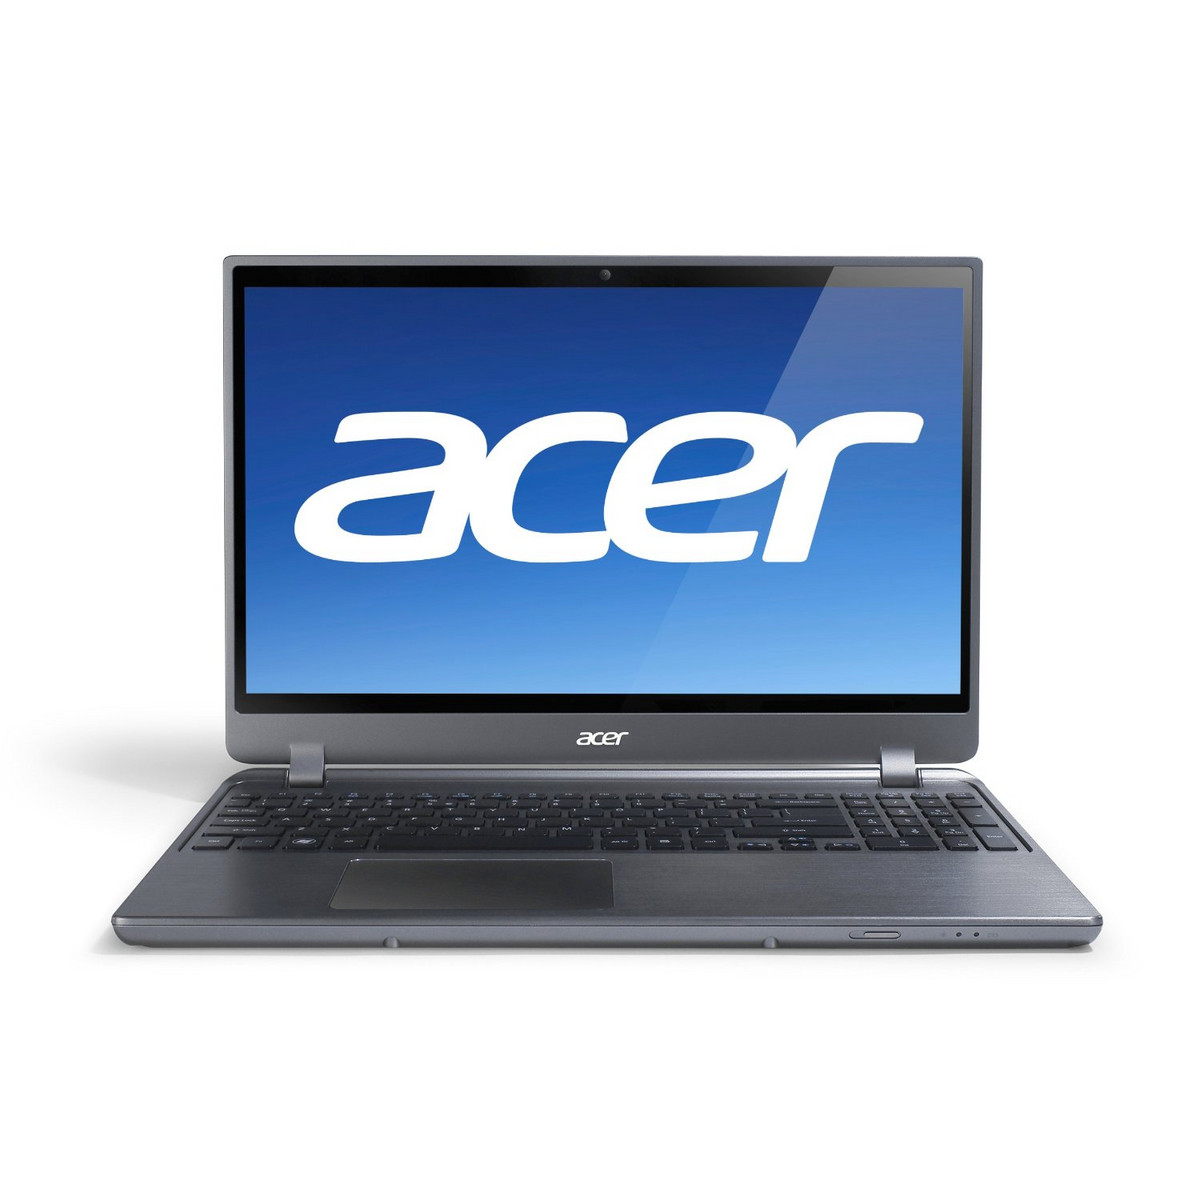 Acer Aspire M5-583P Intel WLAN 64Bit